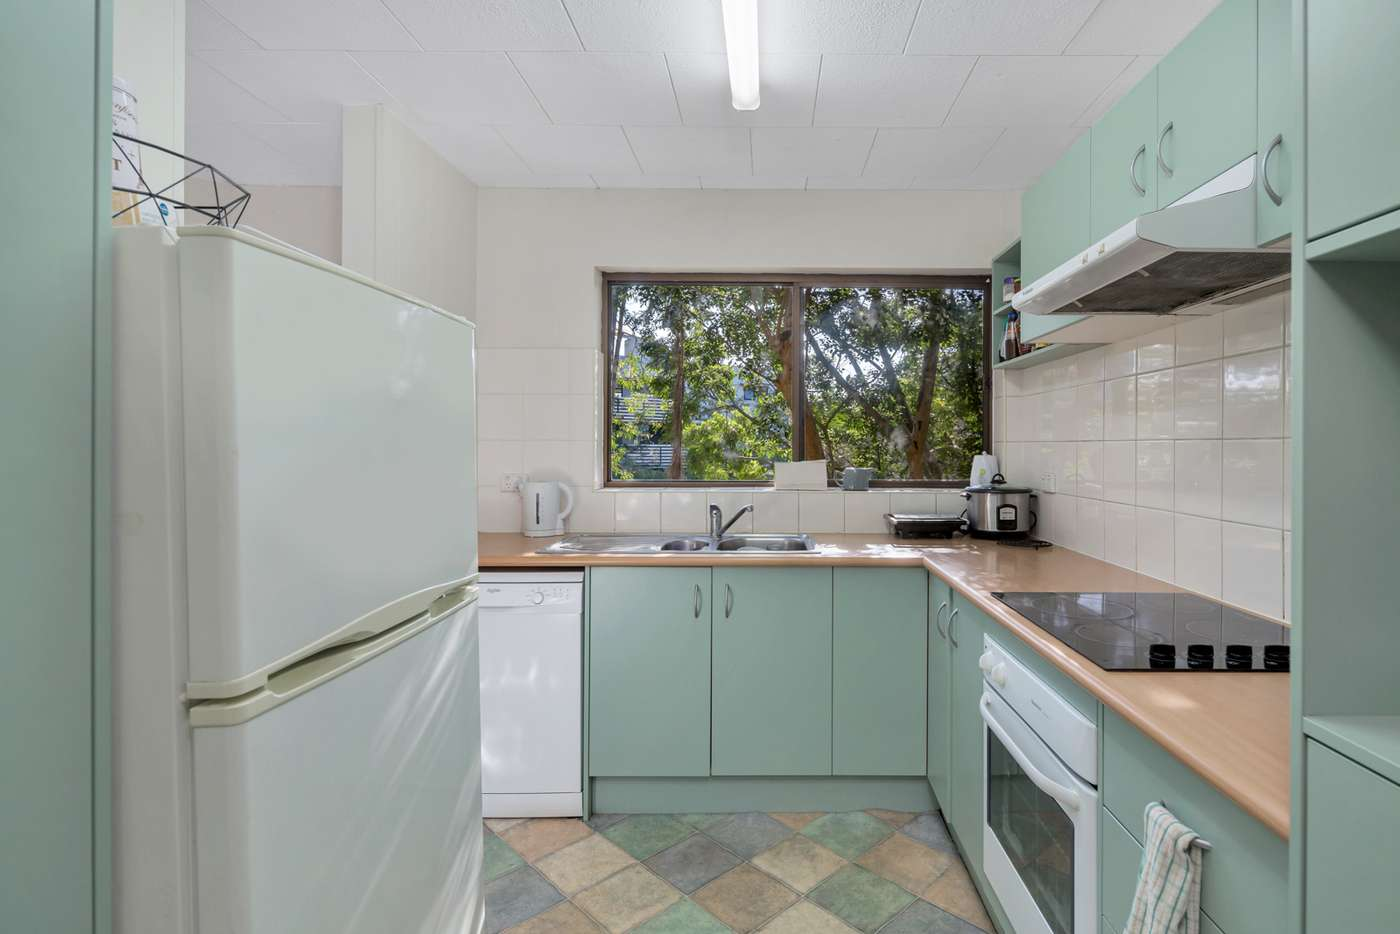 Fifth view of Homely unit listing, 34/44 Brisbane Street, Toowong QLD 4066